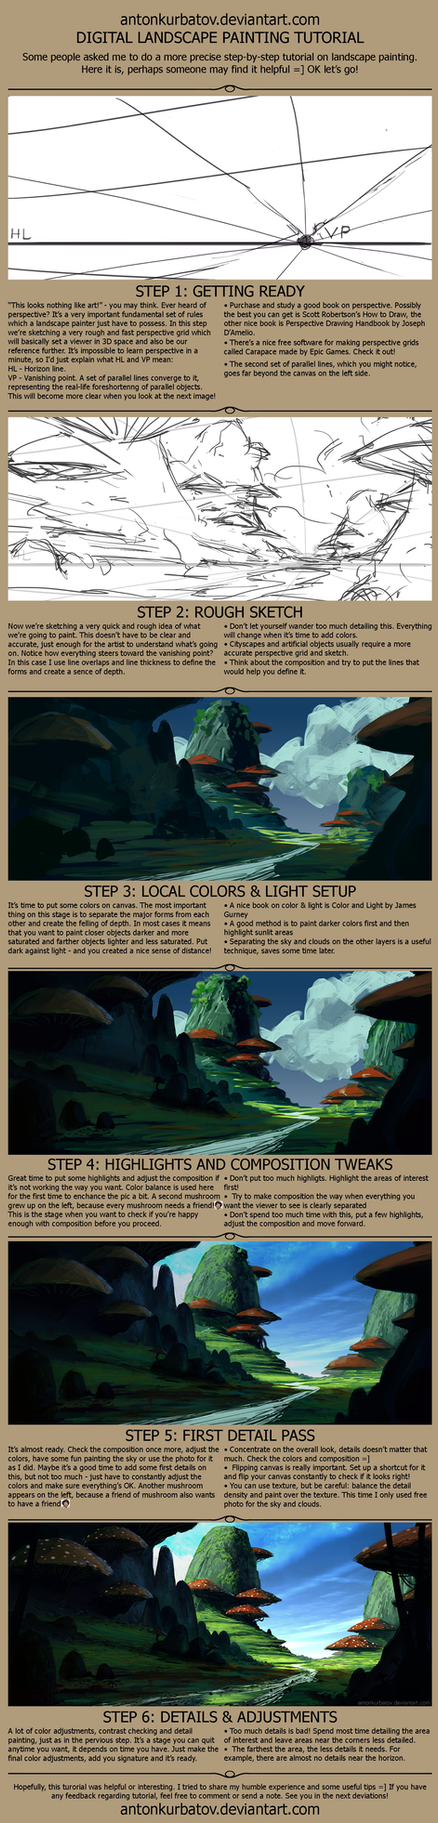 Landscape painting - Big step-by-step tutorial by AntonKurbatov